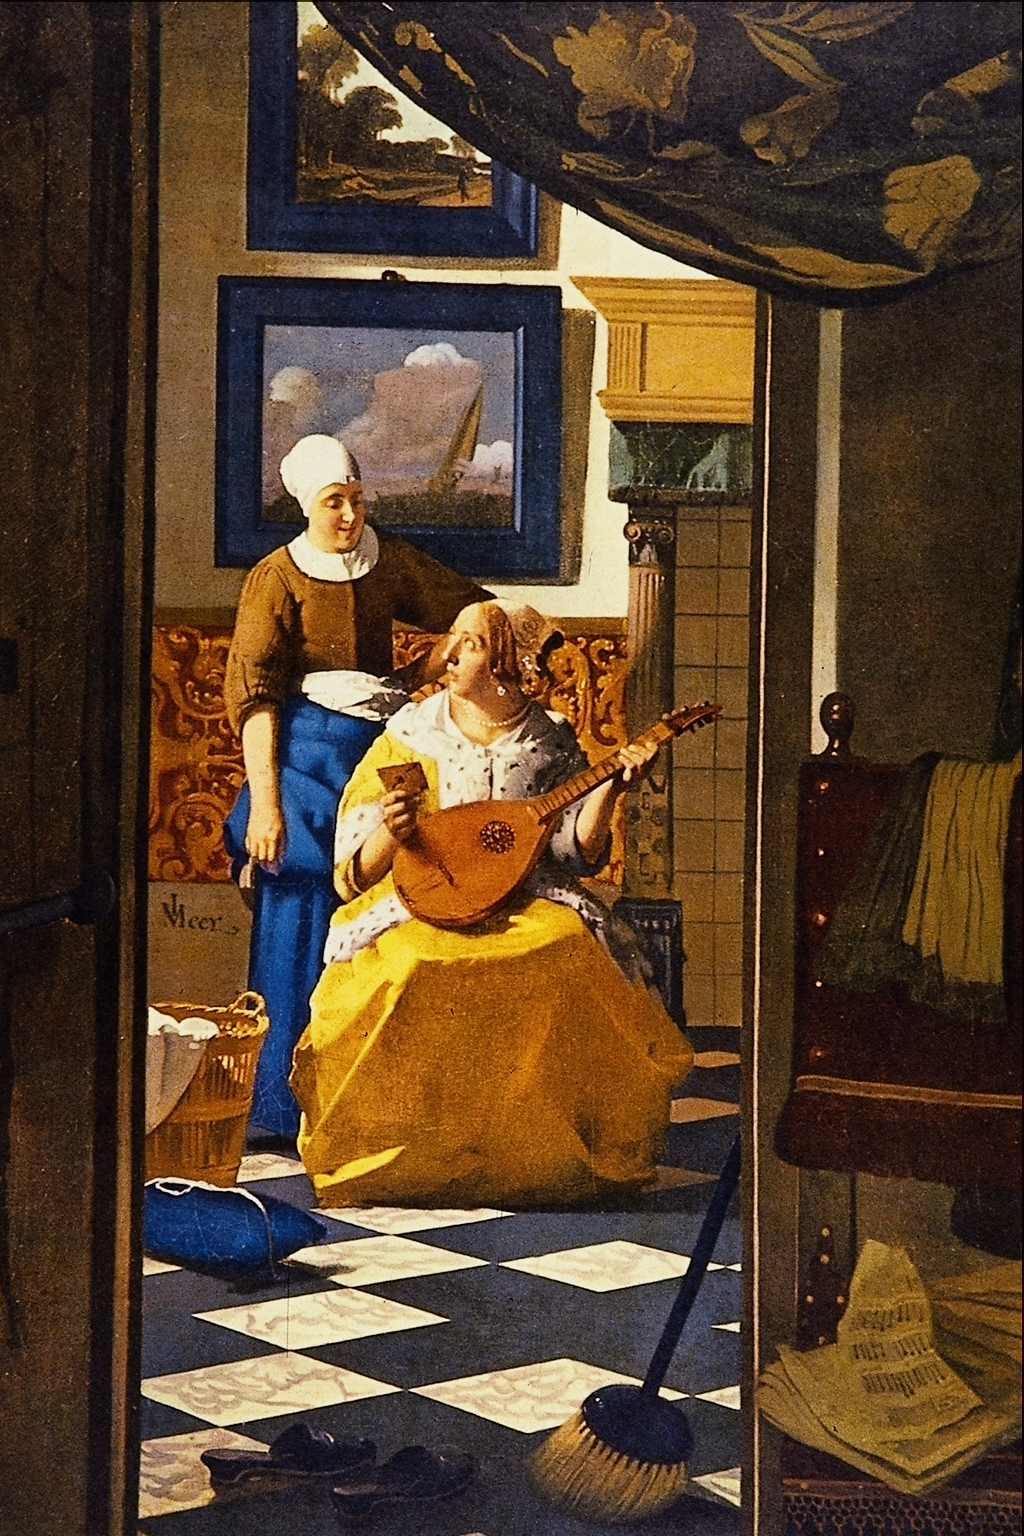 File:The Love Letter - Jan Vermeer van Delft.png - Wikimedia Commons